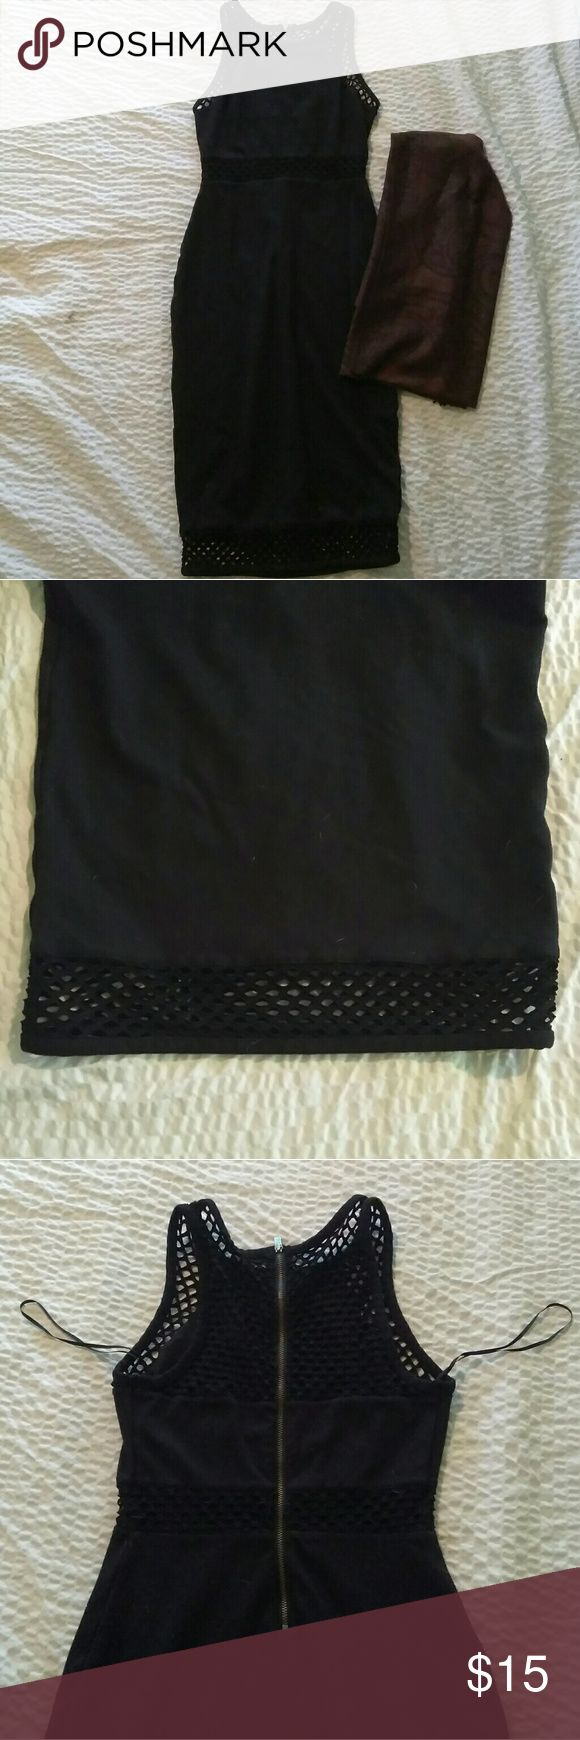 Size 0, stretchy Express midi dress and scarf! Black midi dress, size 0, but could fit a 2-4 comfortably. It's very soft, stretchy, and very flattering. Thick fishnet design at the top, bottom, and midsection. You can dress it up or down! Like new condition! Scarf is new with tags! Express Dresses Midi